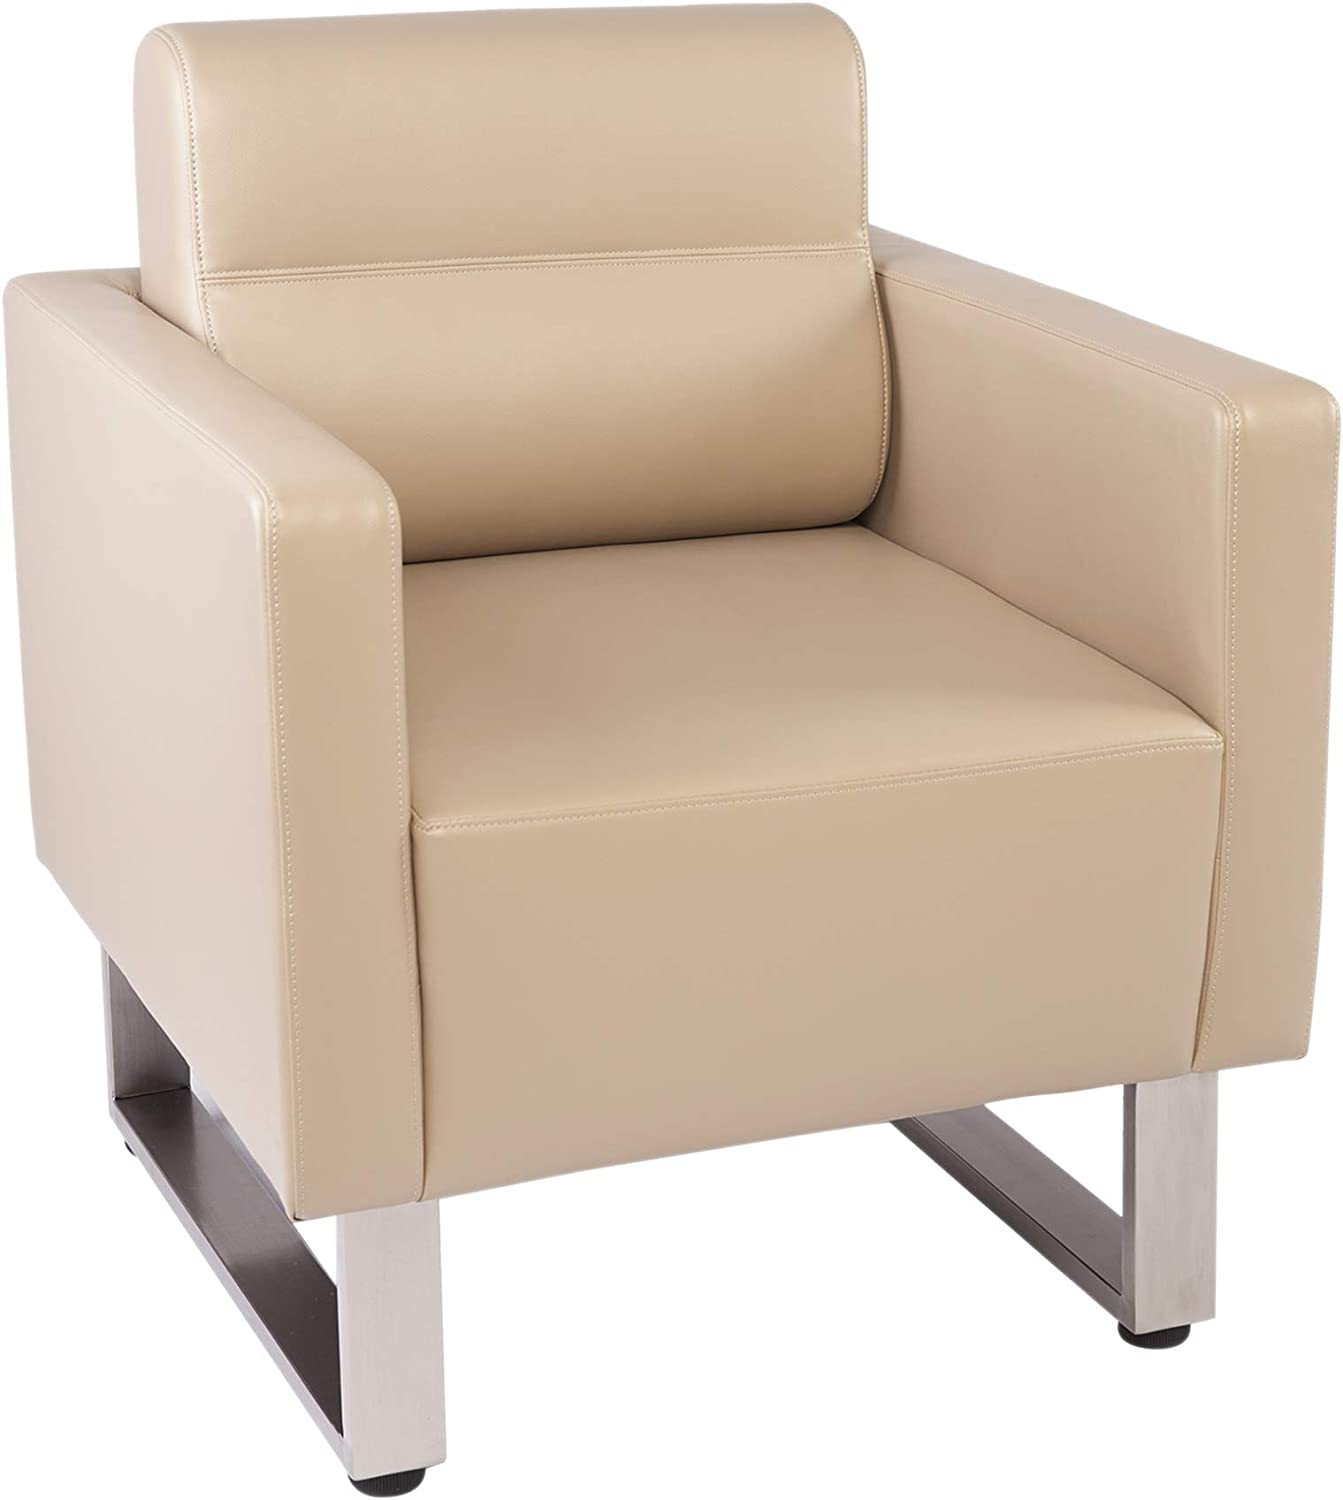 LuckyerMore Barrel Chair Lobby Chair Leather Occasional Sofa Chairs Reception Guest Single Sofa for Office Meeting Room Living Room,Beige